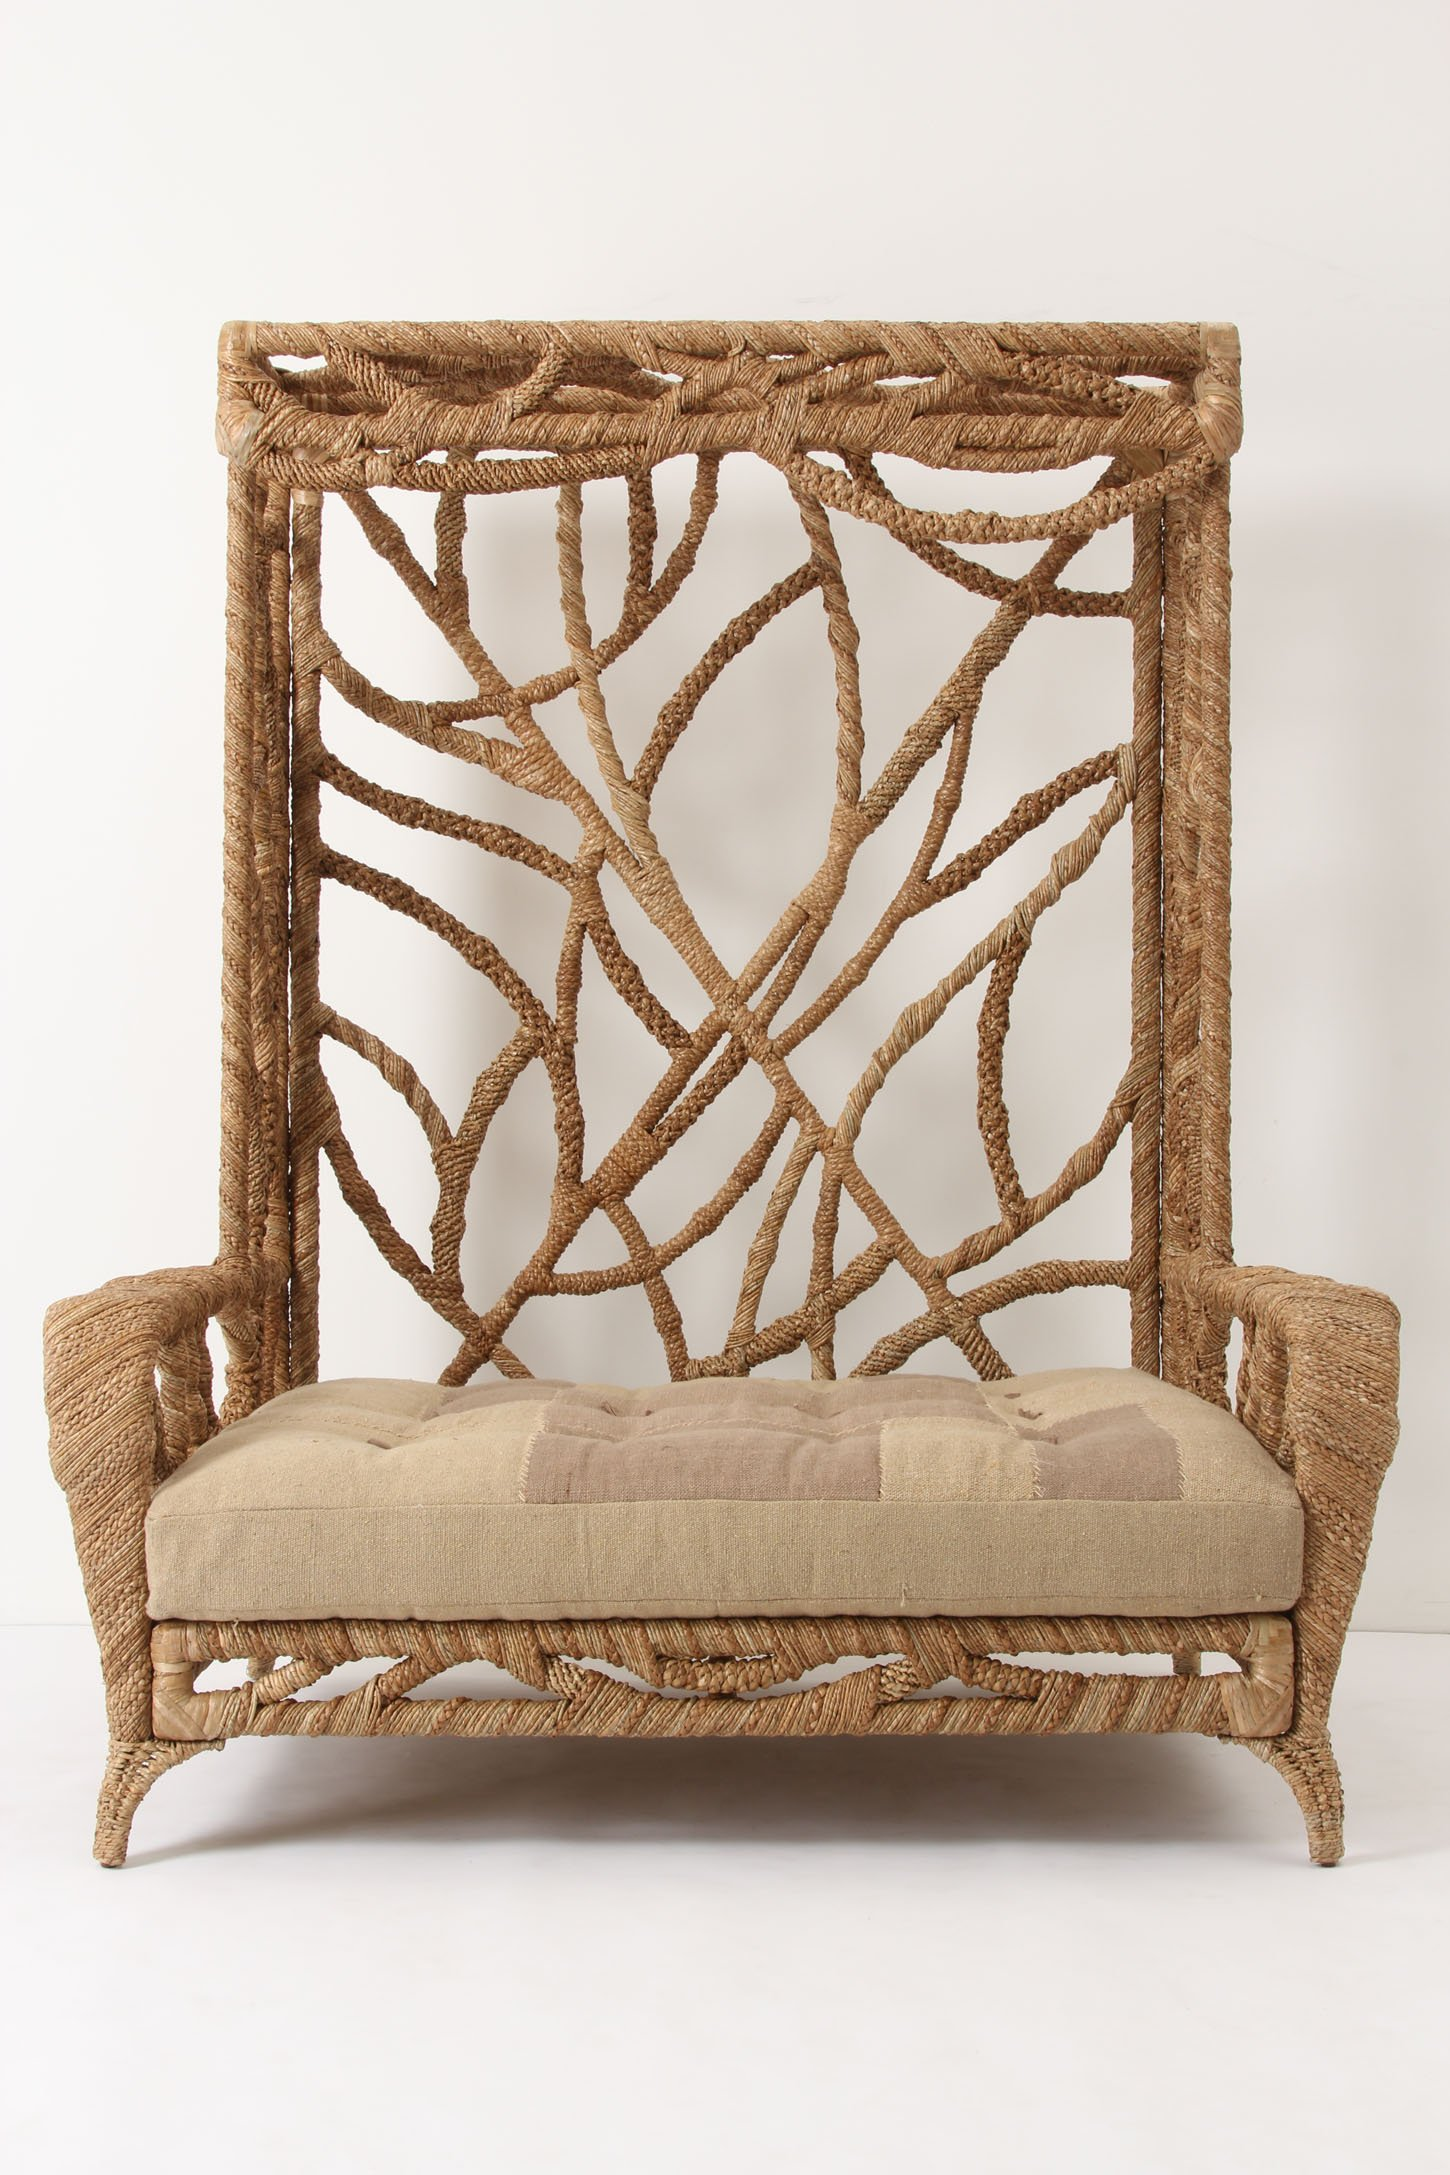 Bench Chairs Anthropologie Brings Modern Indoor And Outdoor Furniture